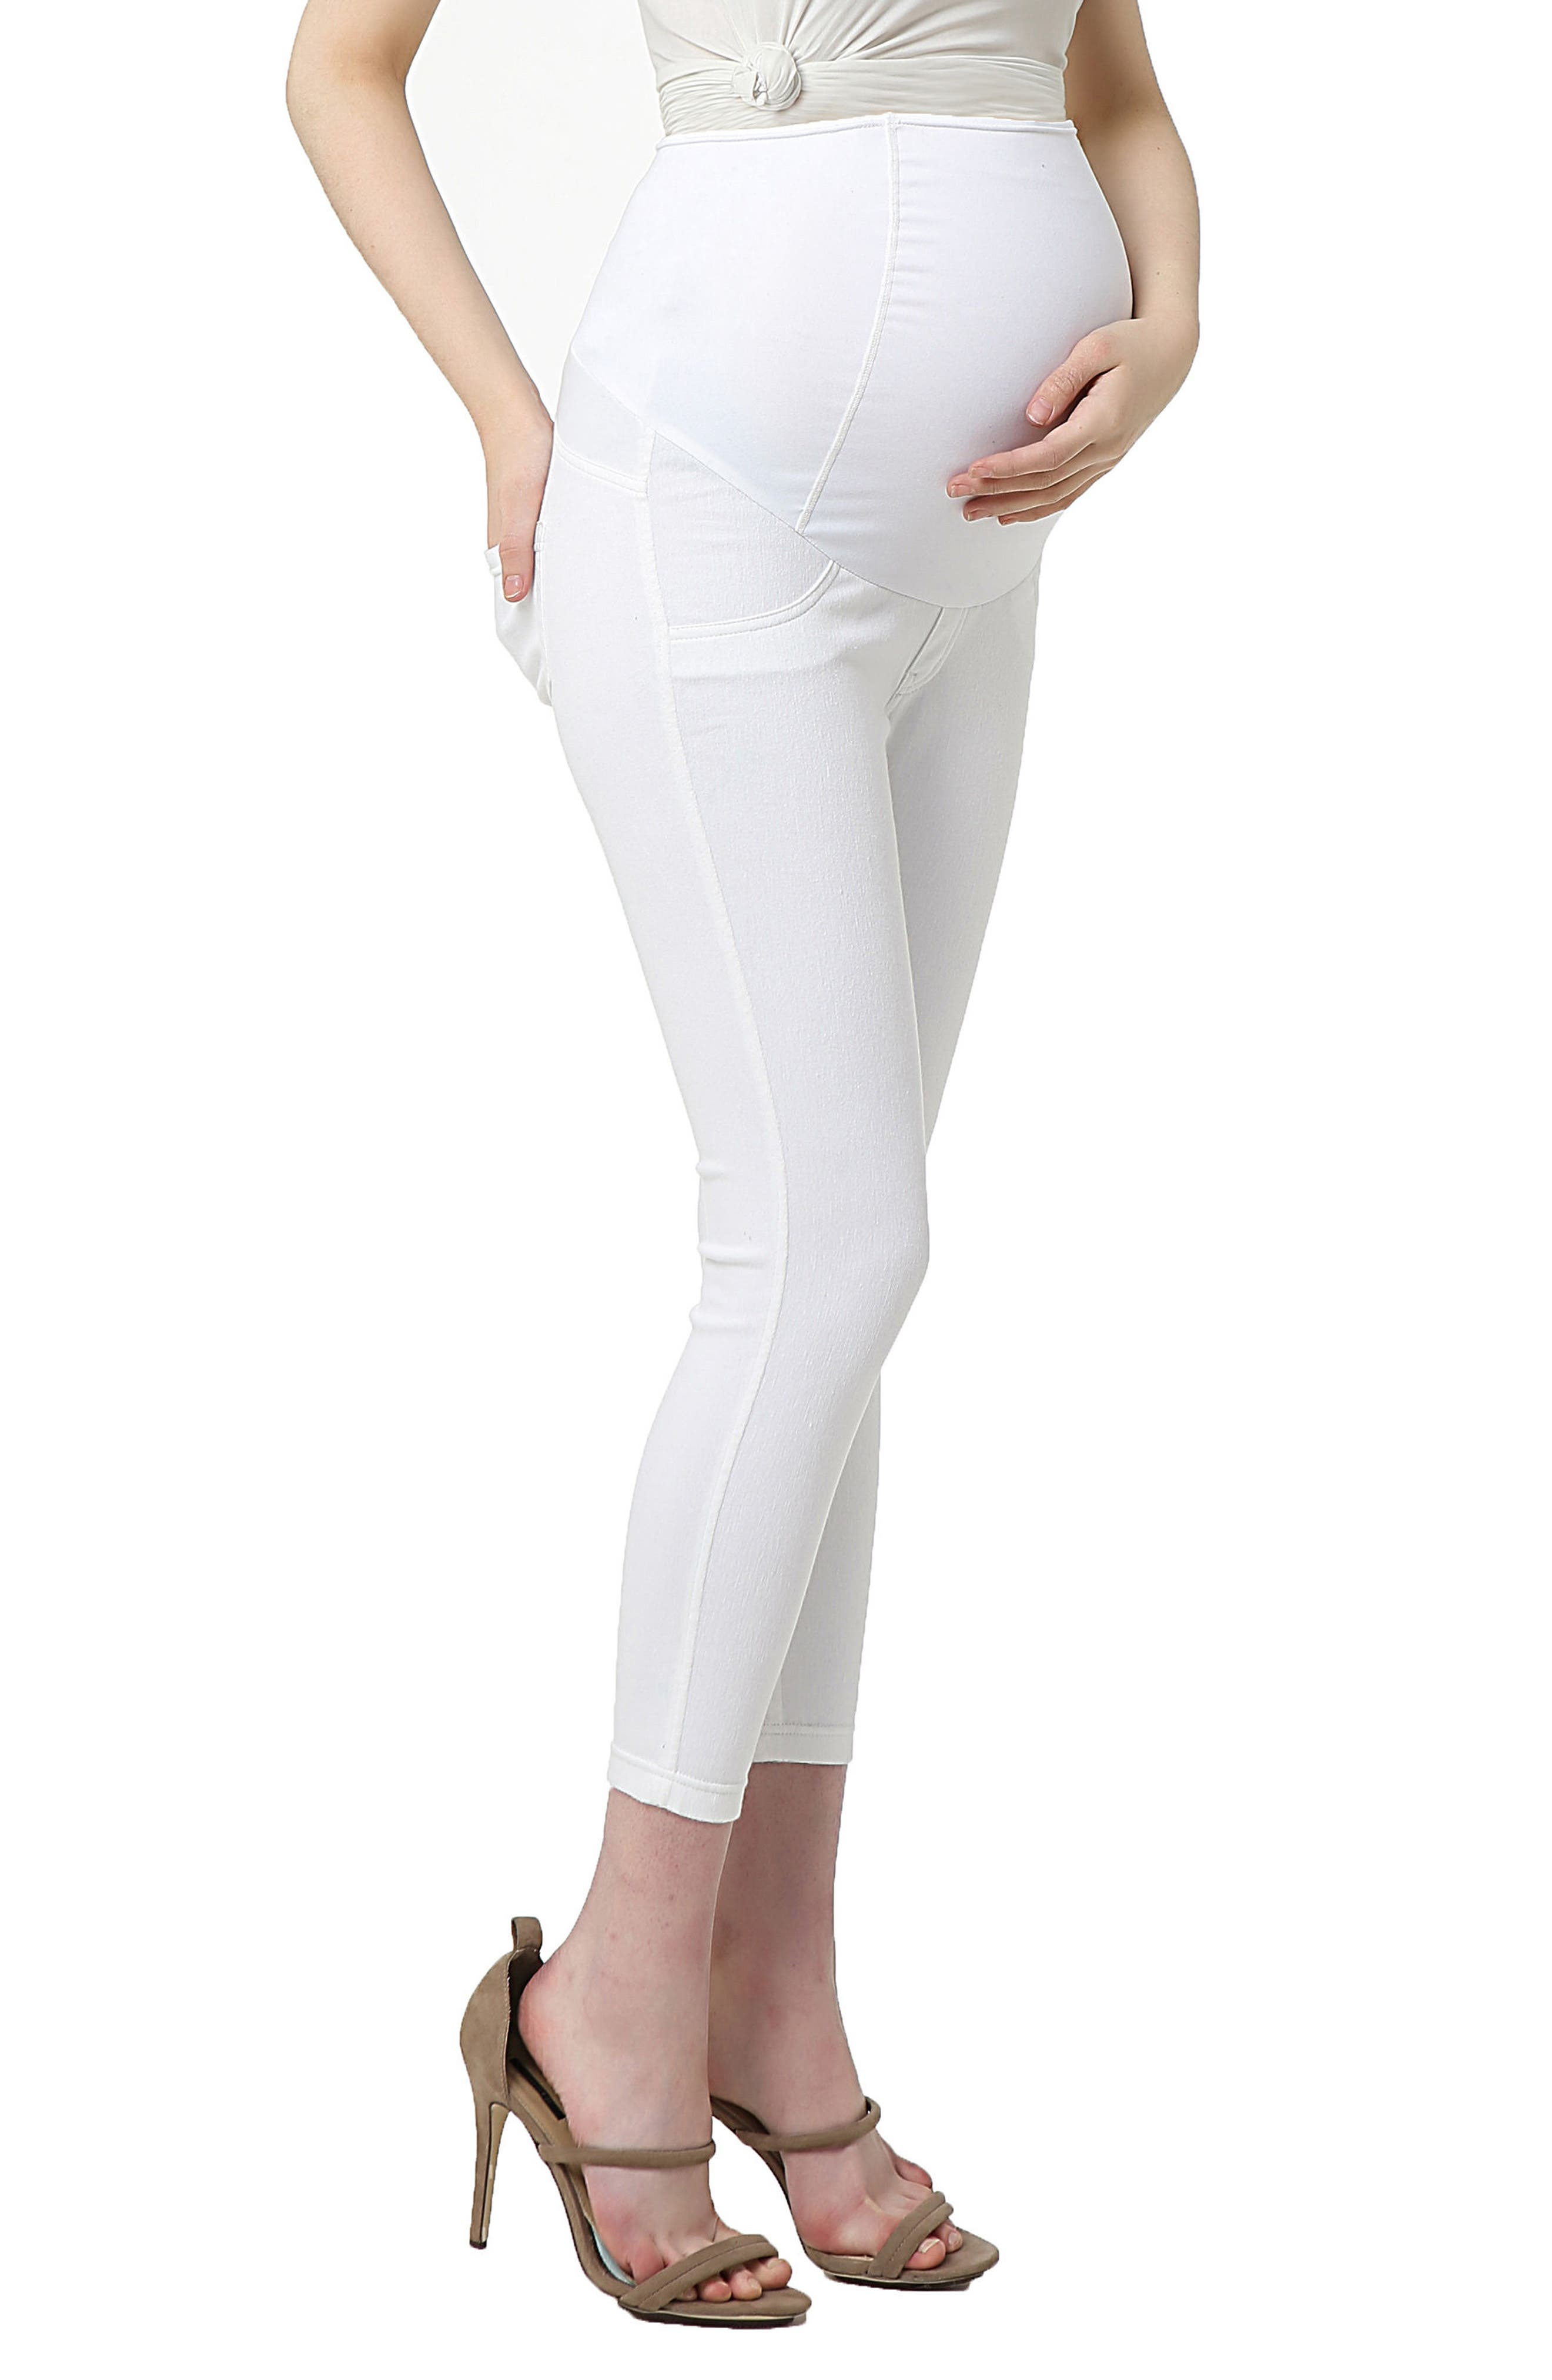 KIMI AND KAI, Tia Cropped Denim Maternity Leggings, Alternate thumbnail 3, color, WHITE